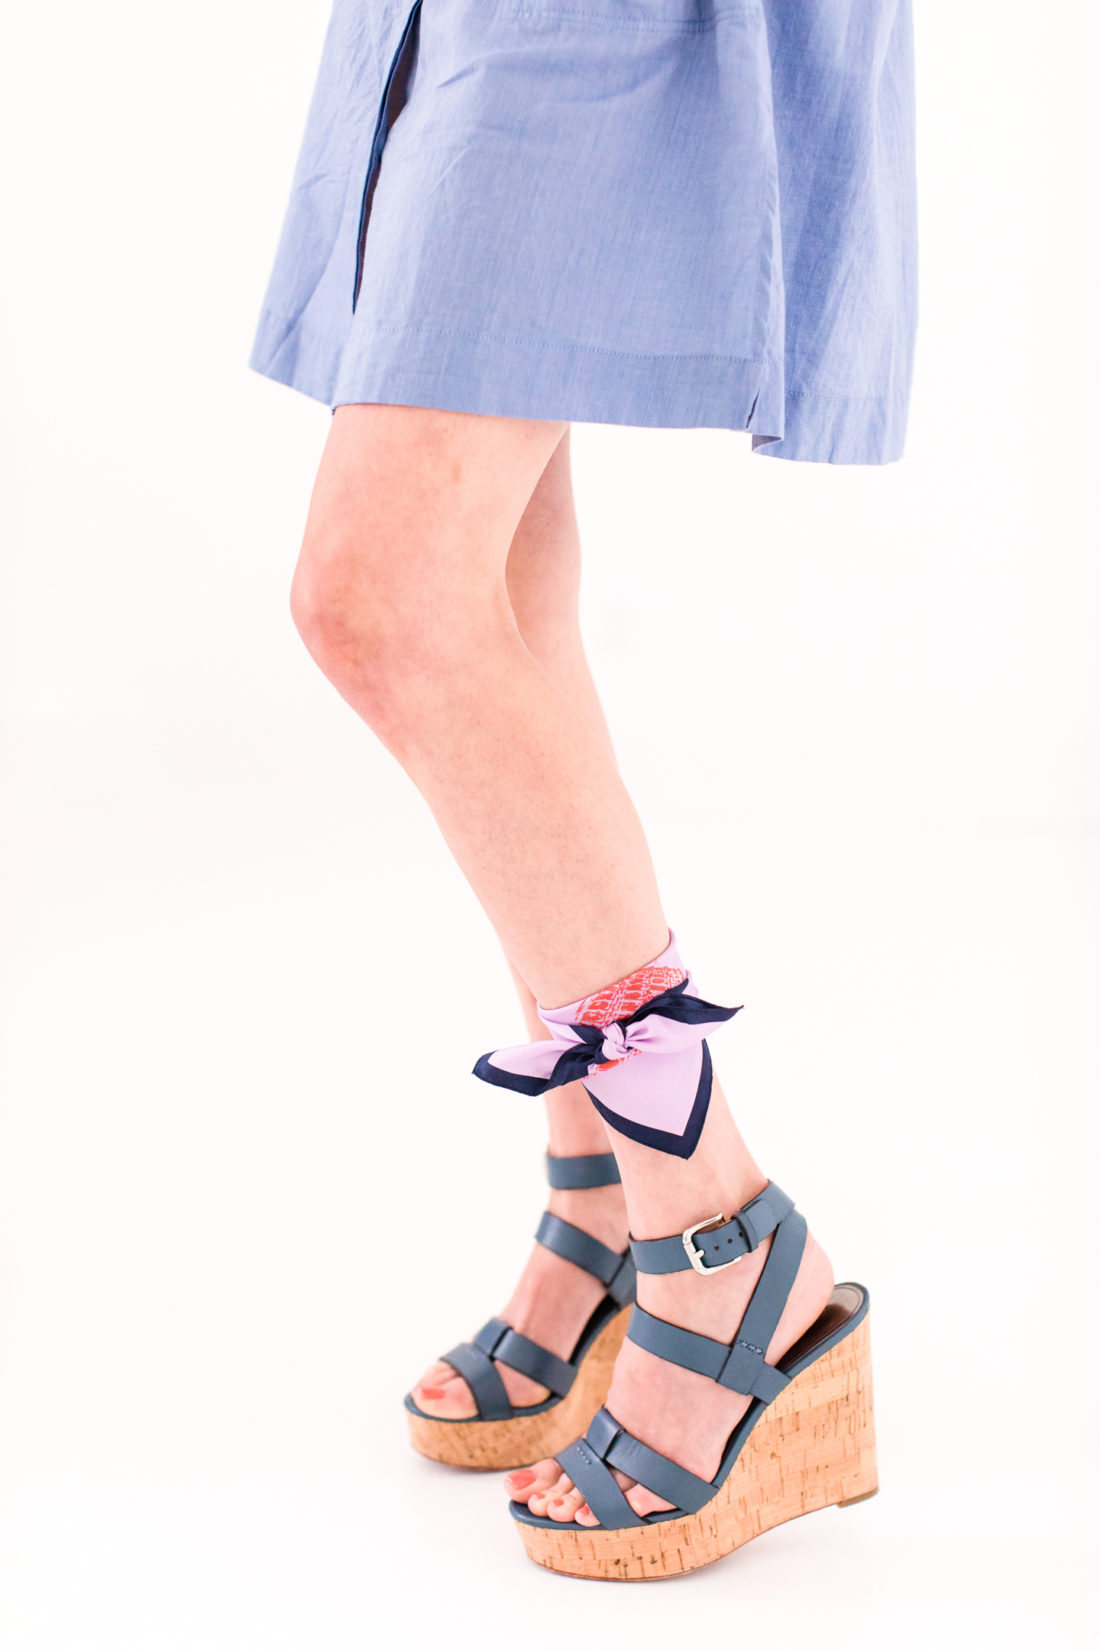 Eva Amurri Martino wears a light blue shirt dress and wraps a folded silk scarf around her ankle as an ankle accessory